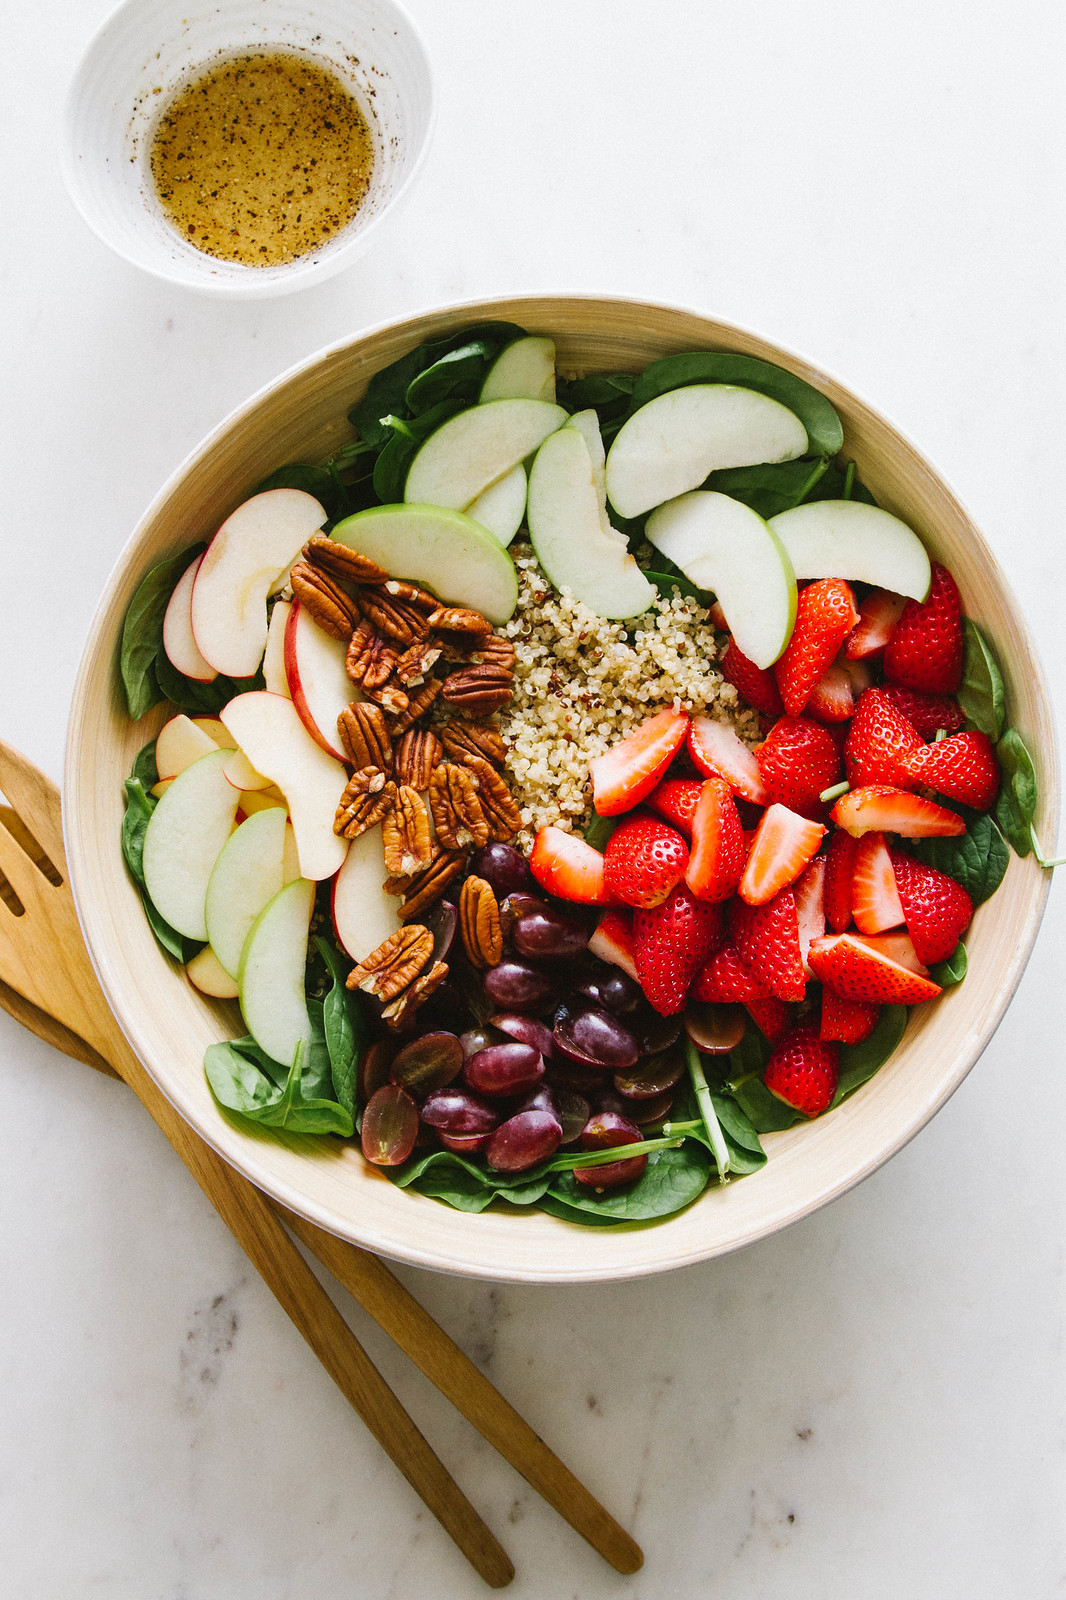 STRAWBERRY, APPLE, QUINOA SPINACH SALAD